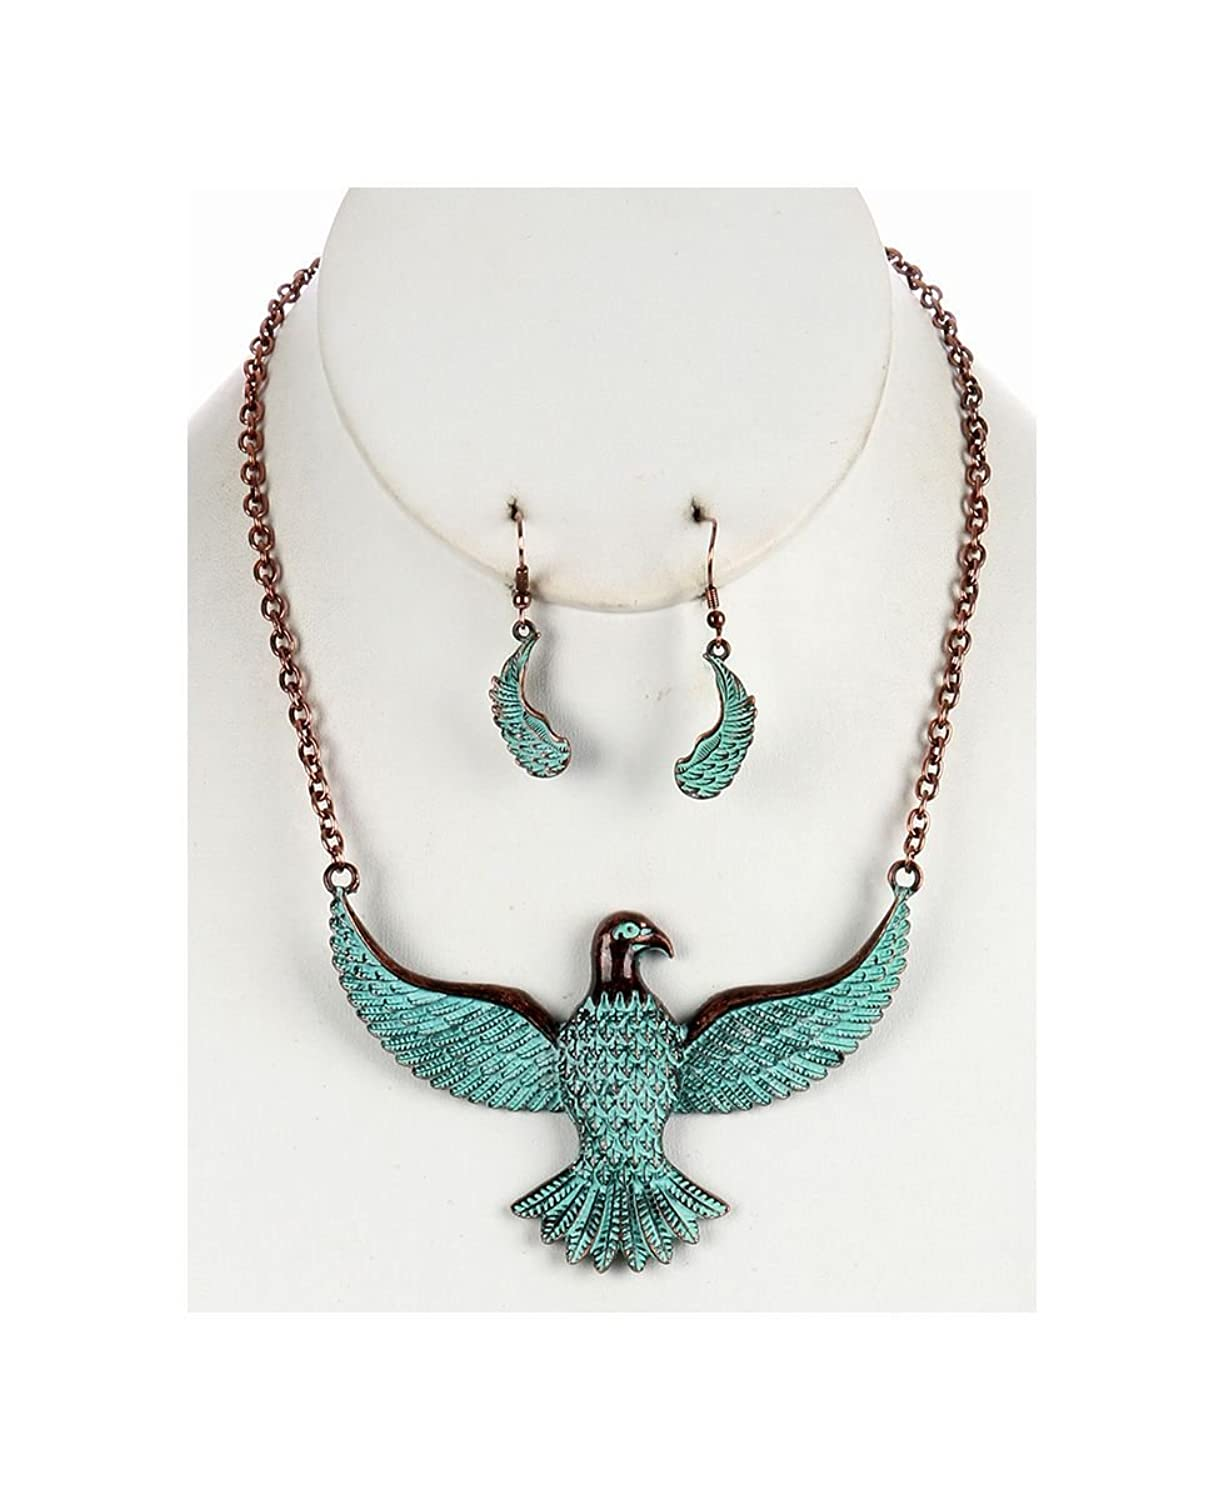 Aged Finish Metal Necklace And Earring Set Thunderbird Bib With Textured